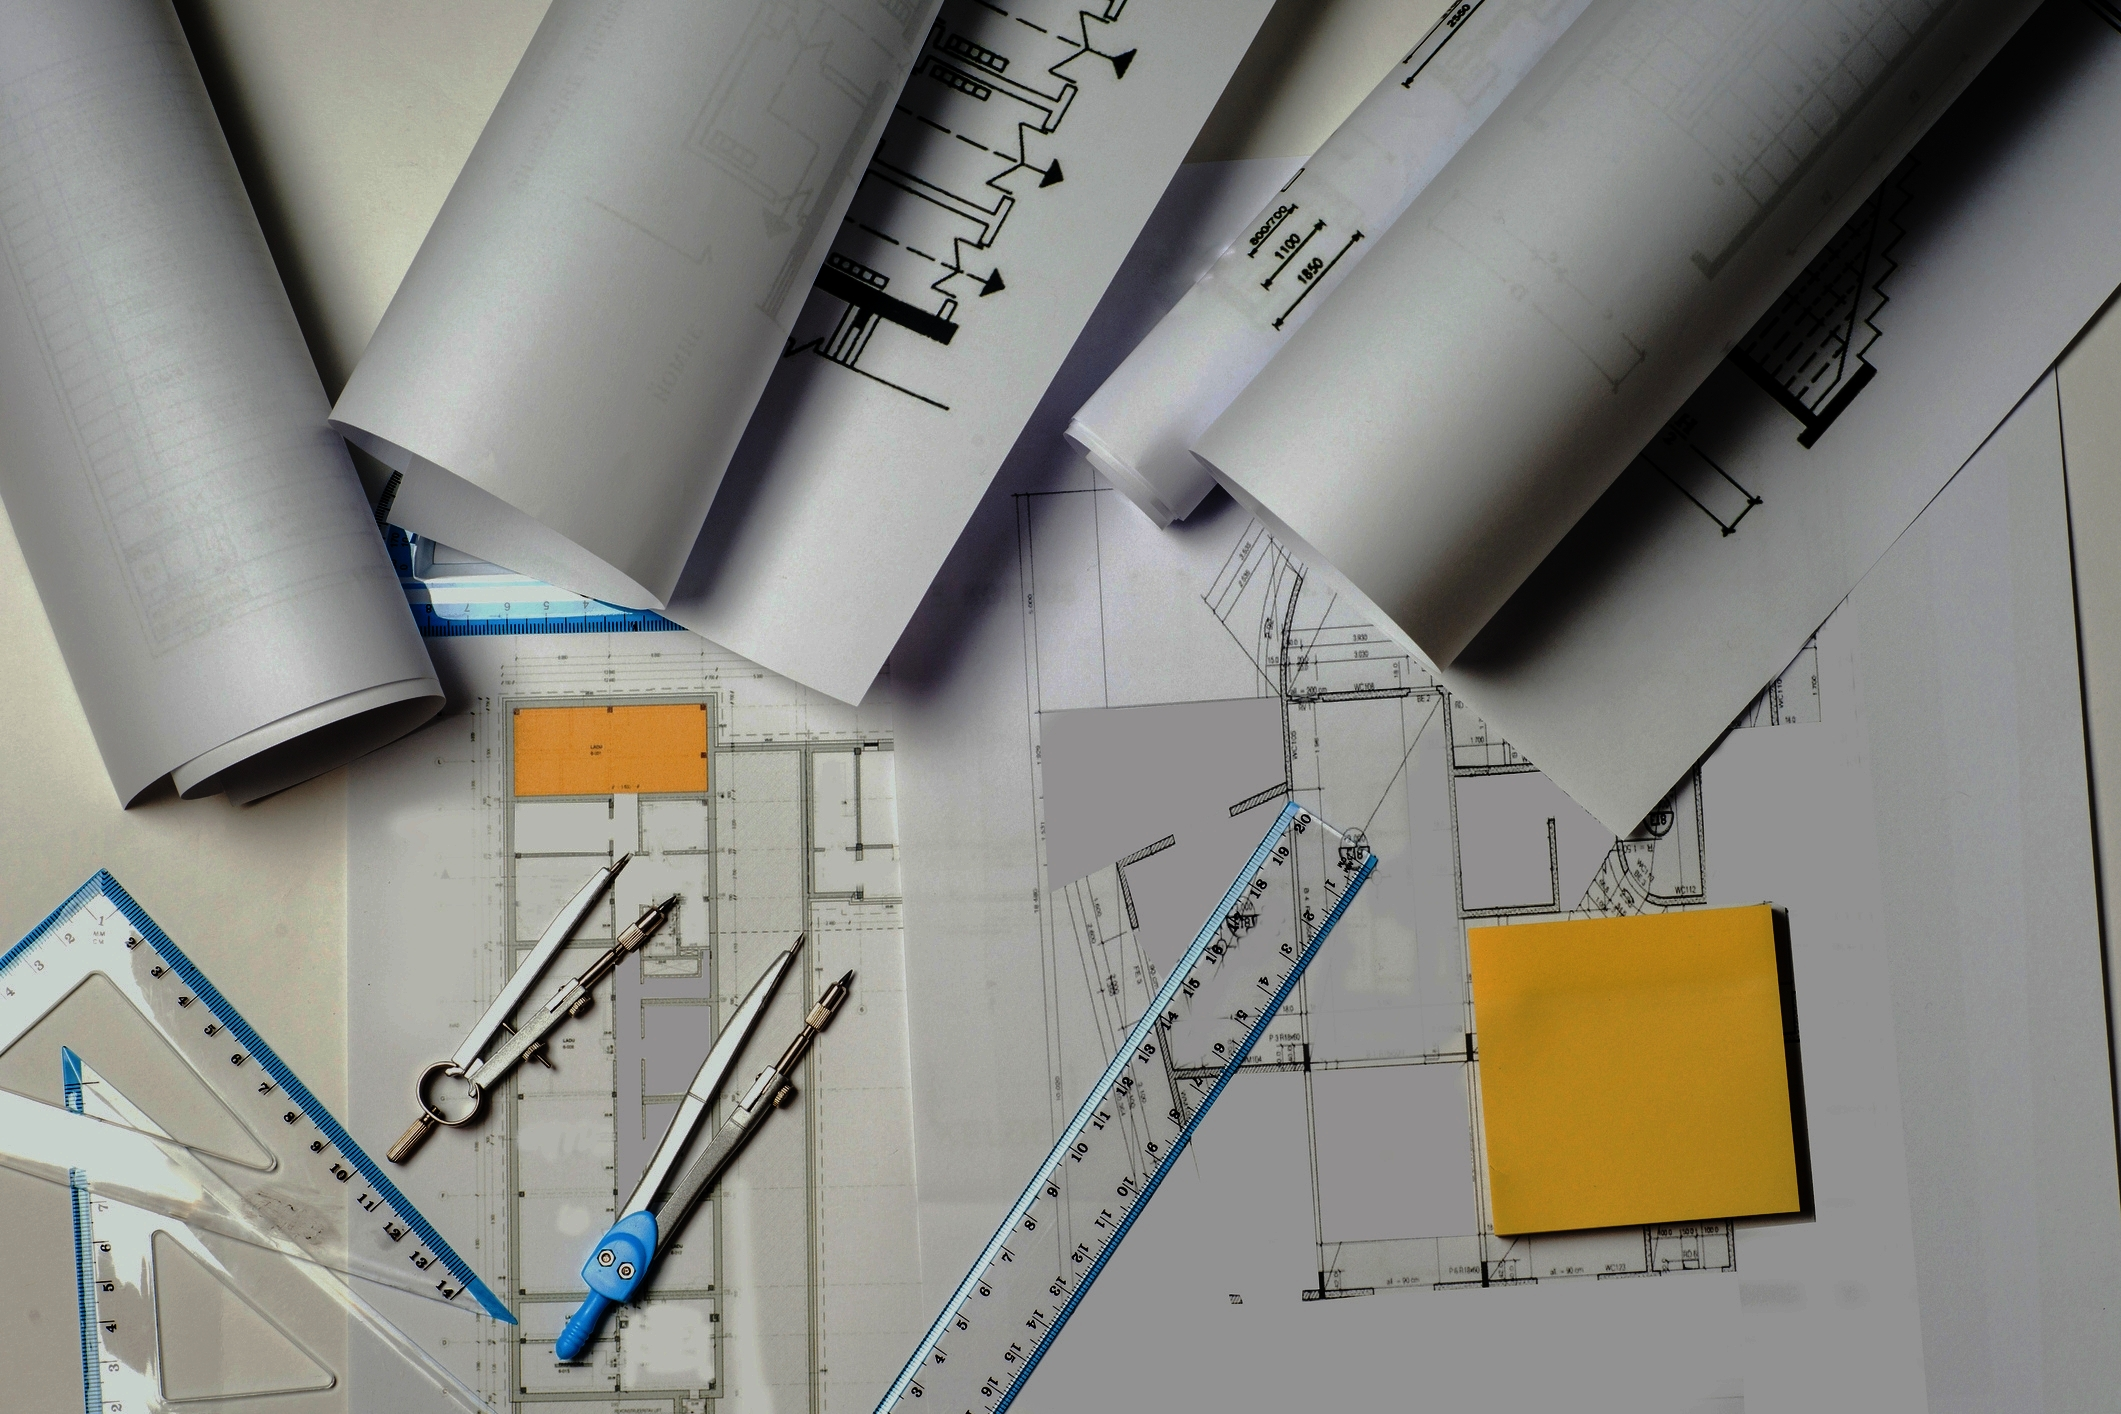 Process Design & Improvement - Increase revenue.  Lower cost. Eliminate safety hazards. Speed up production.  Reduce Waste. There are a thousand reasons to improve you process, and we can help.